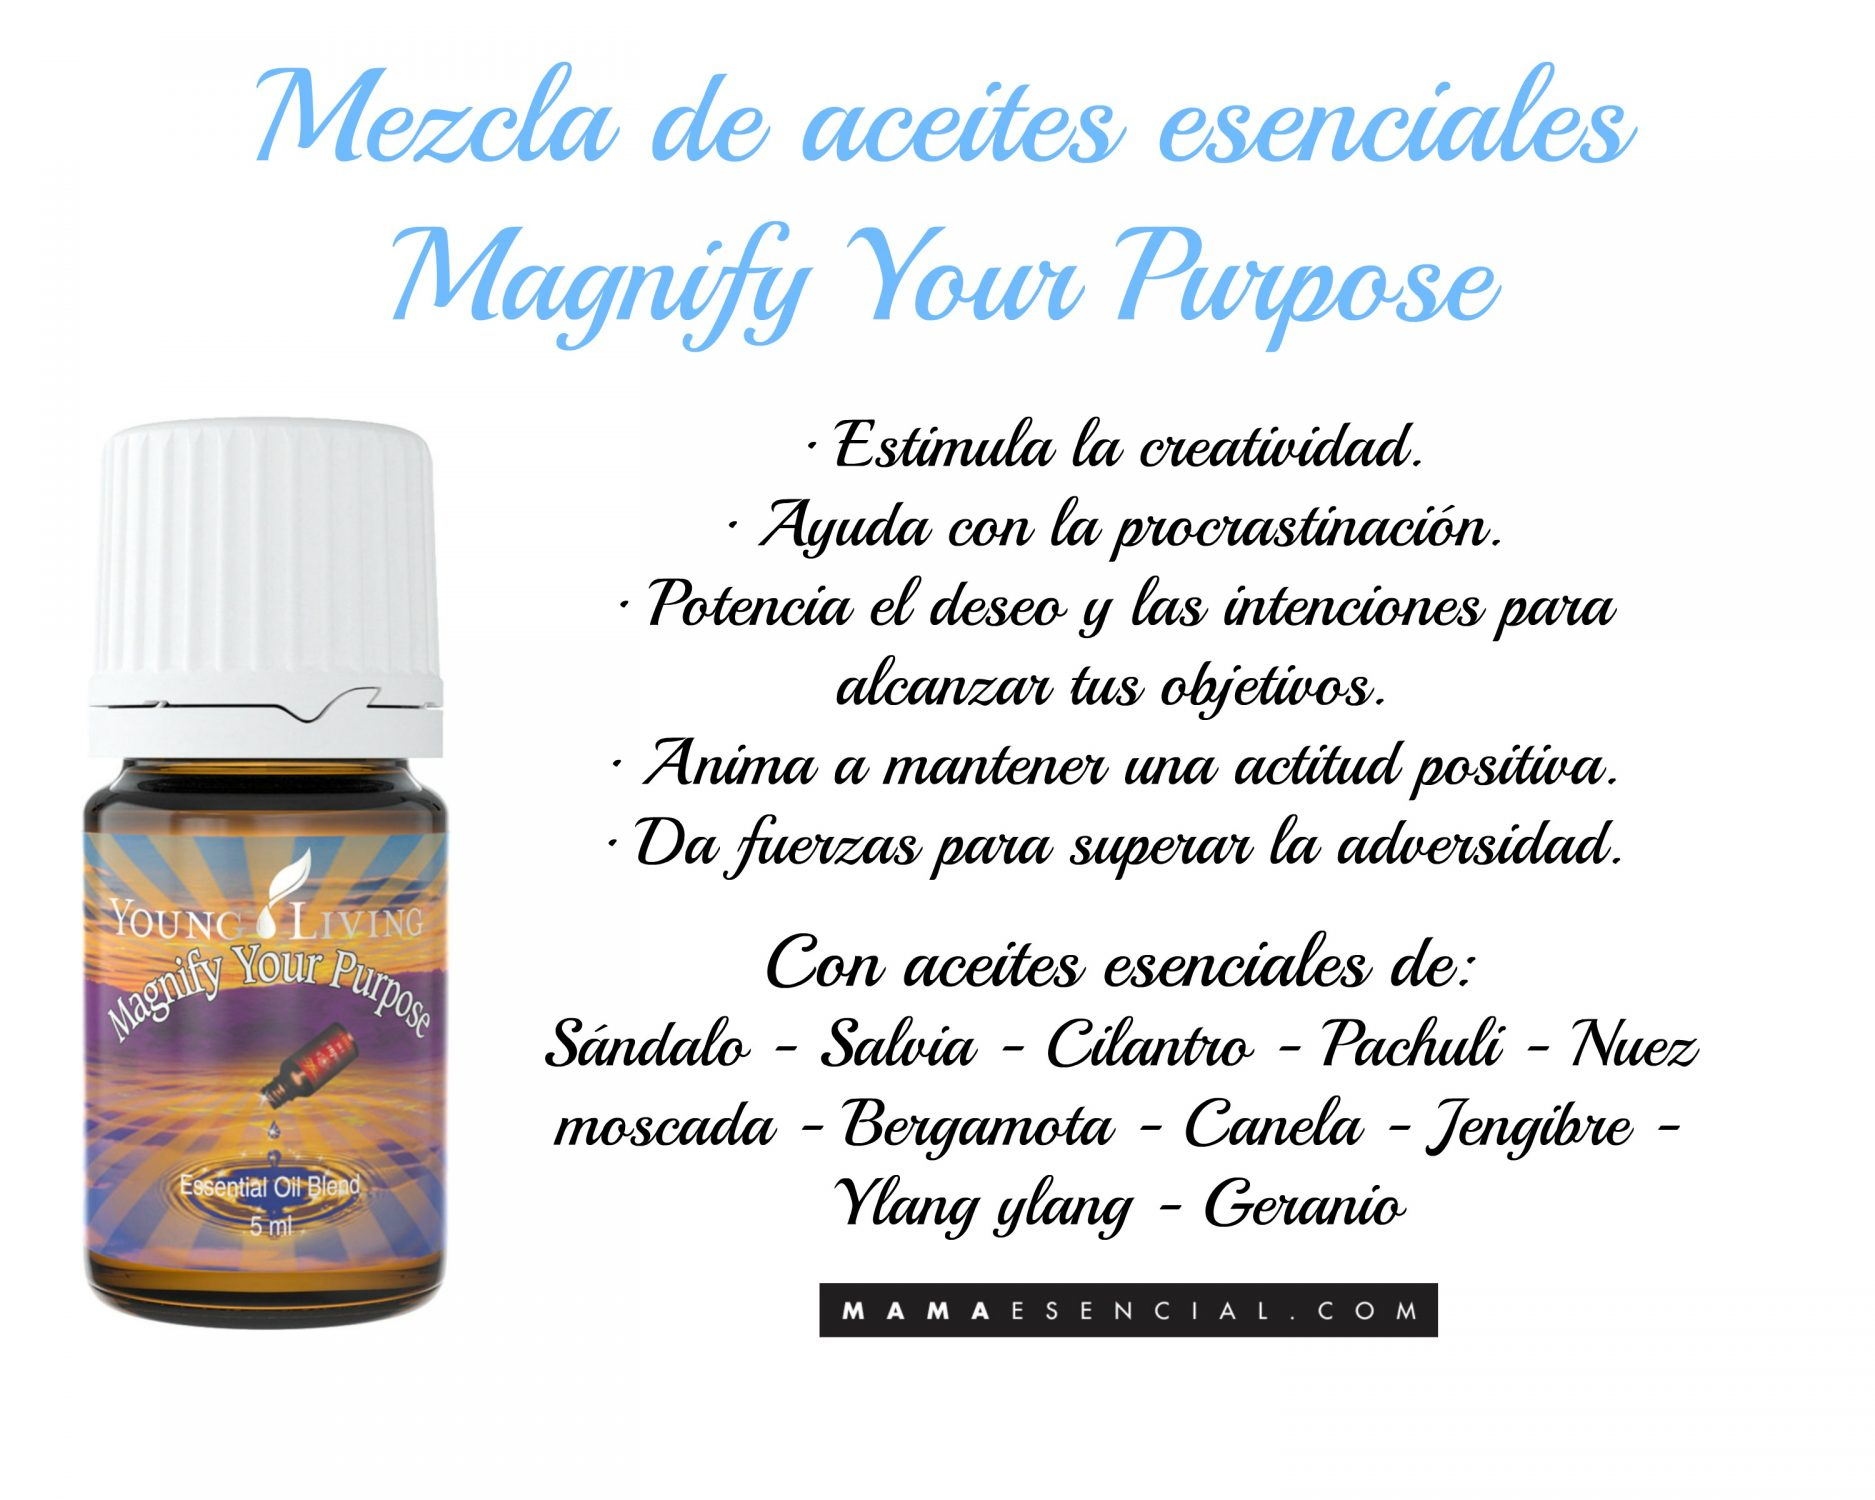 POTENCIA TU CONFIANZA CON MAGNIFY YOUR PURPOSE